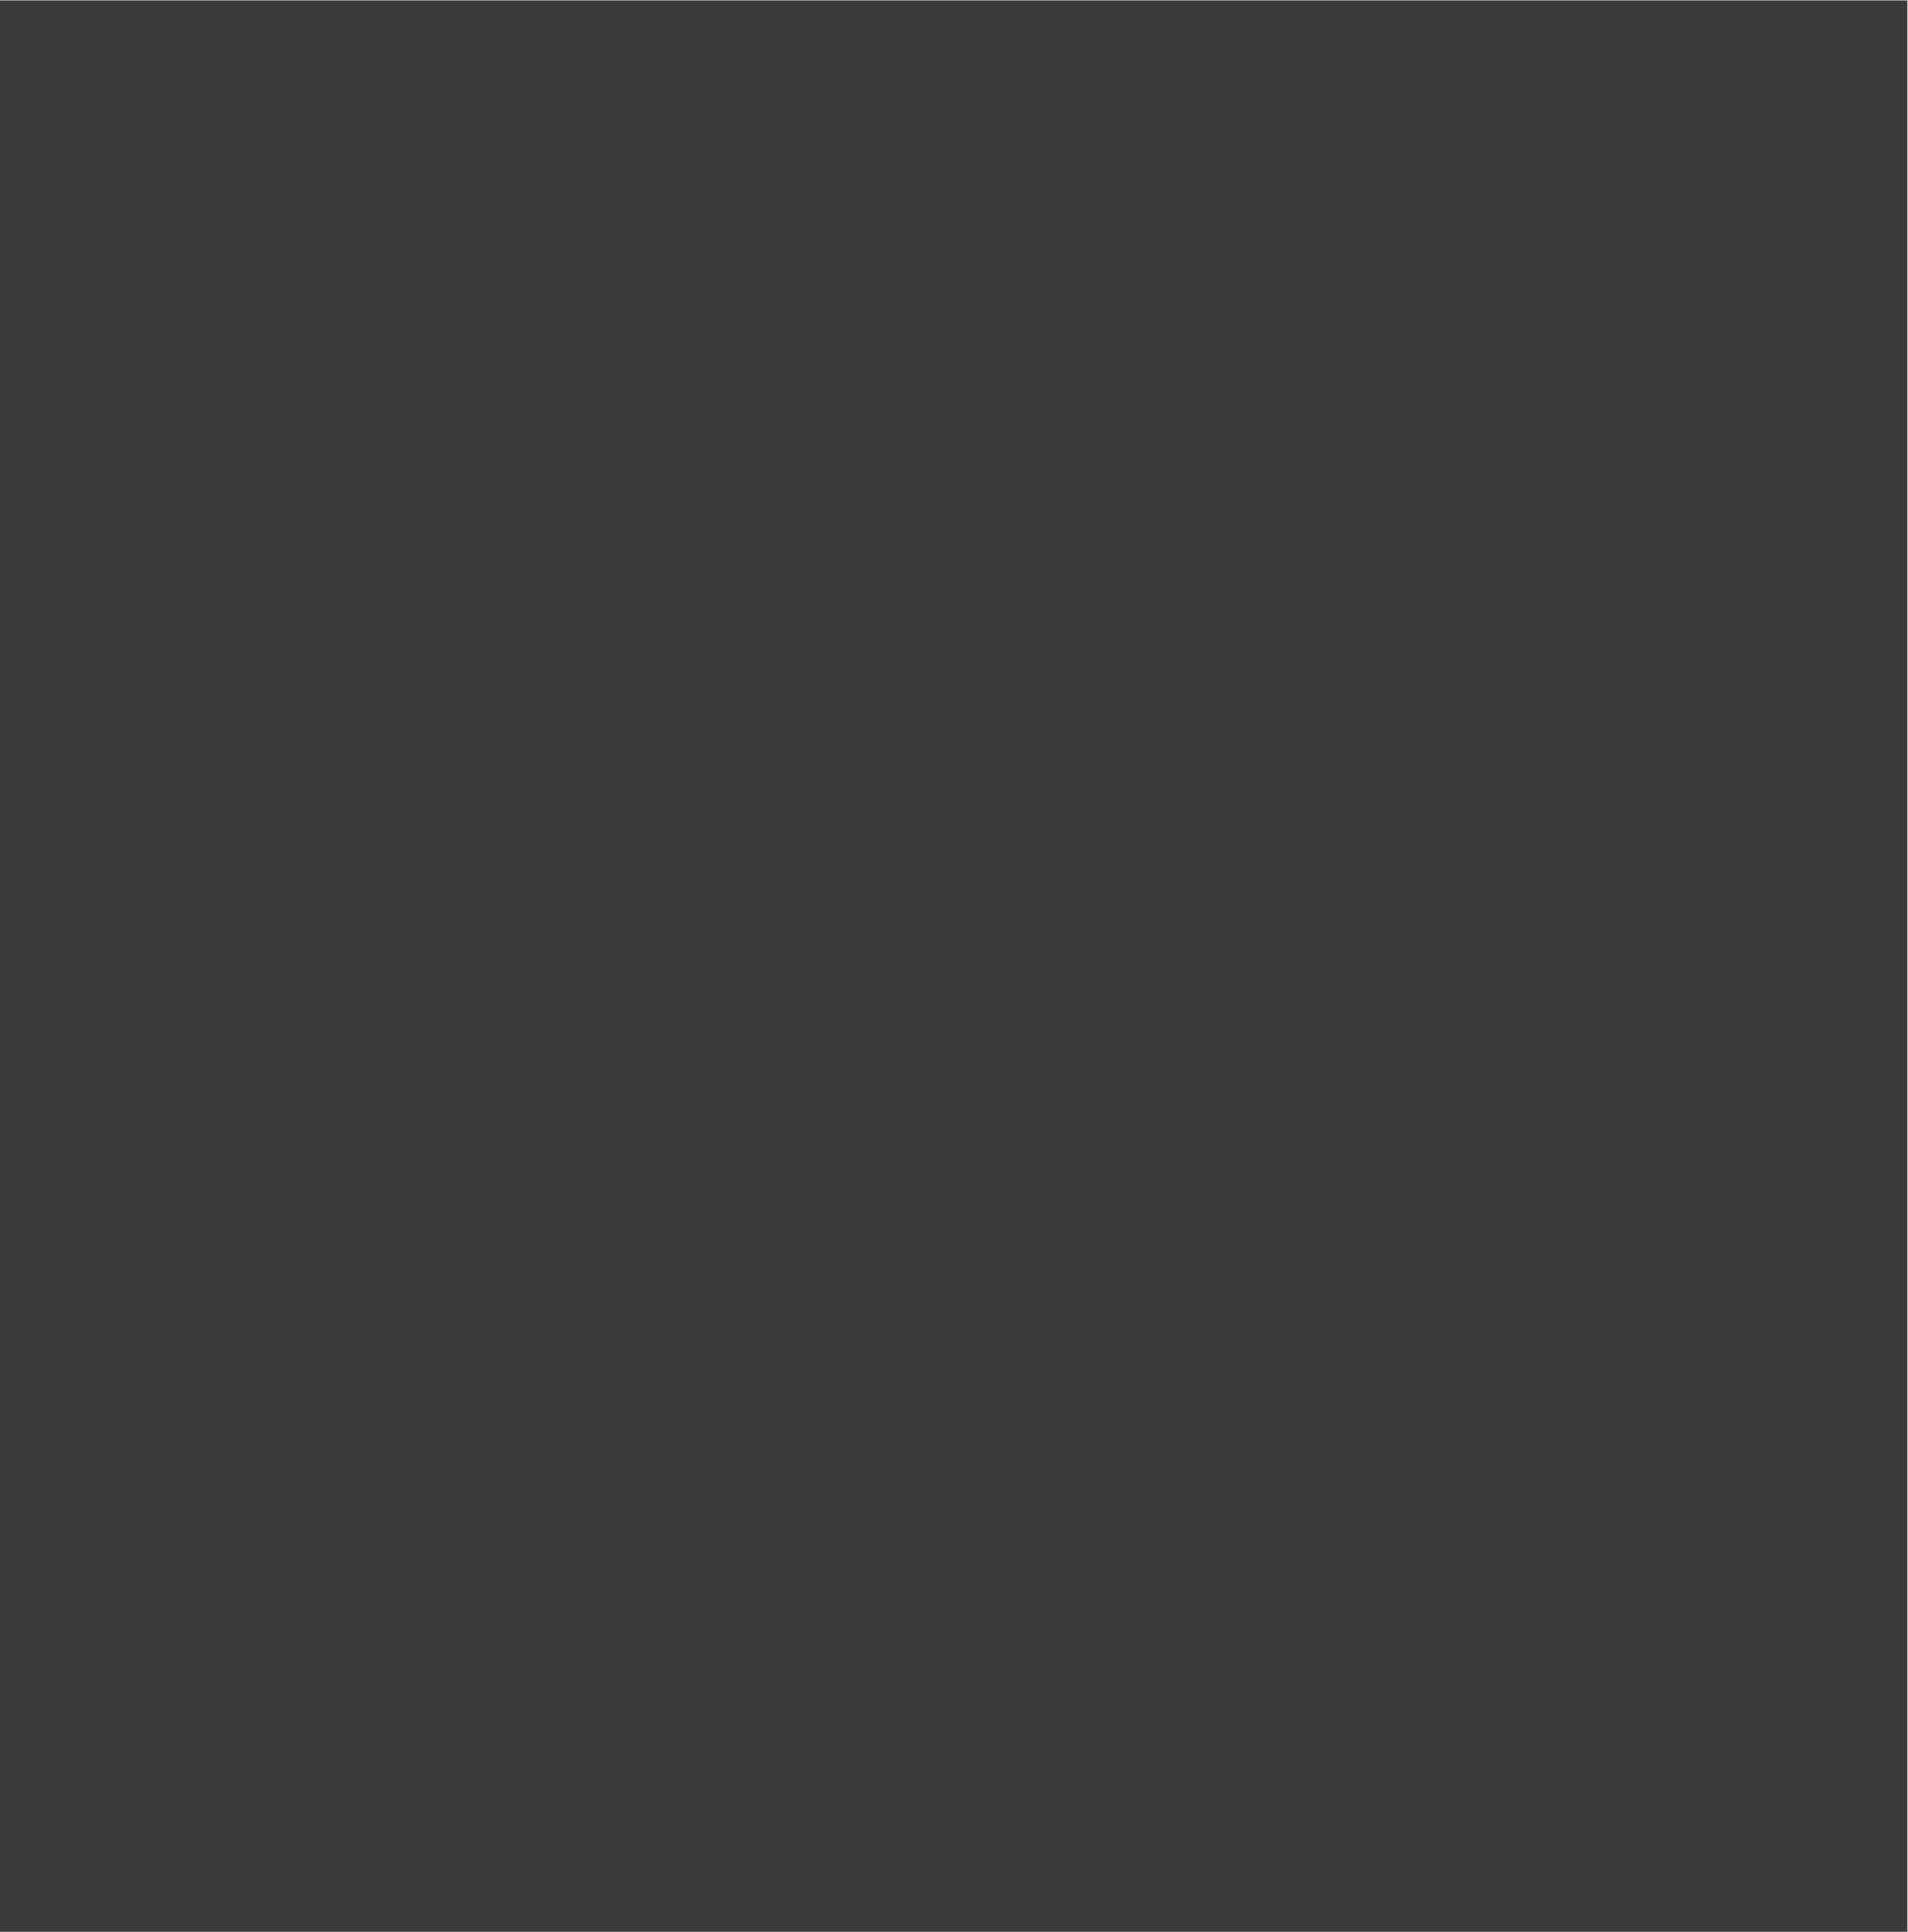 Sample of dark gray, one of the accent colors.